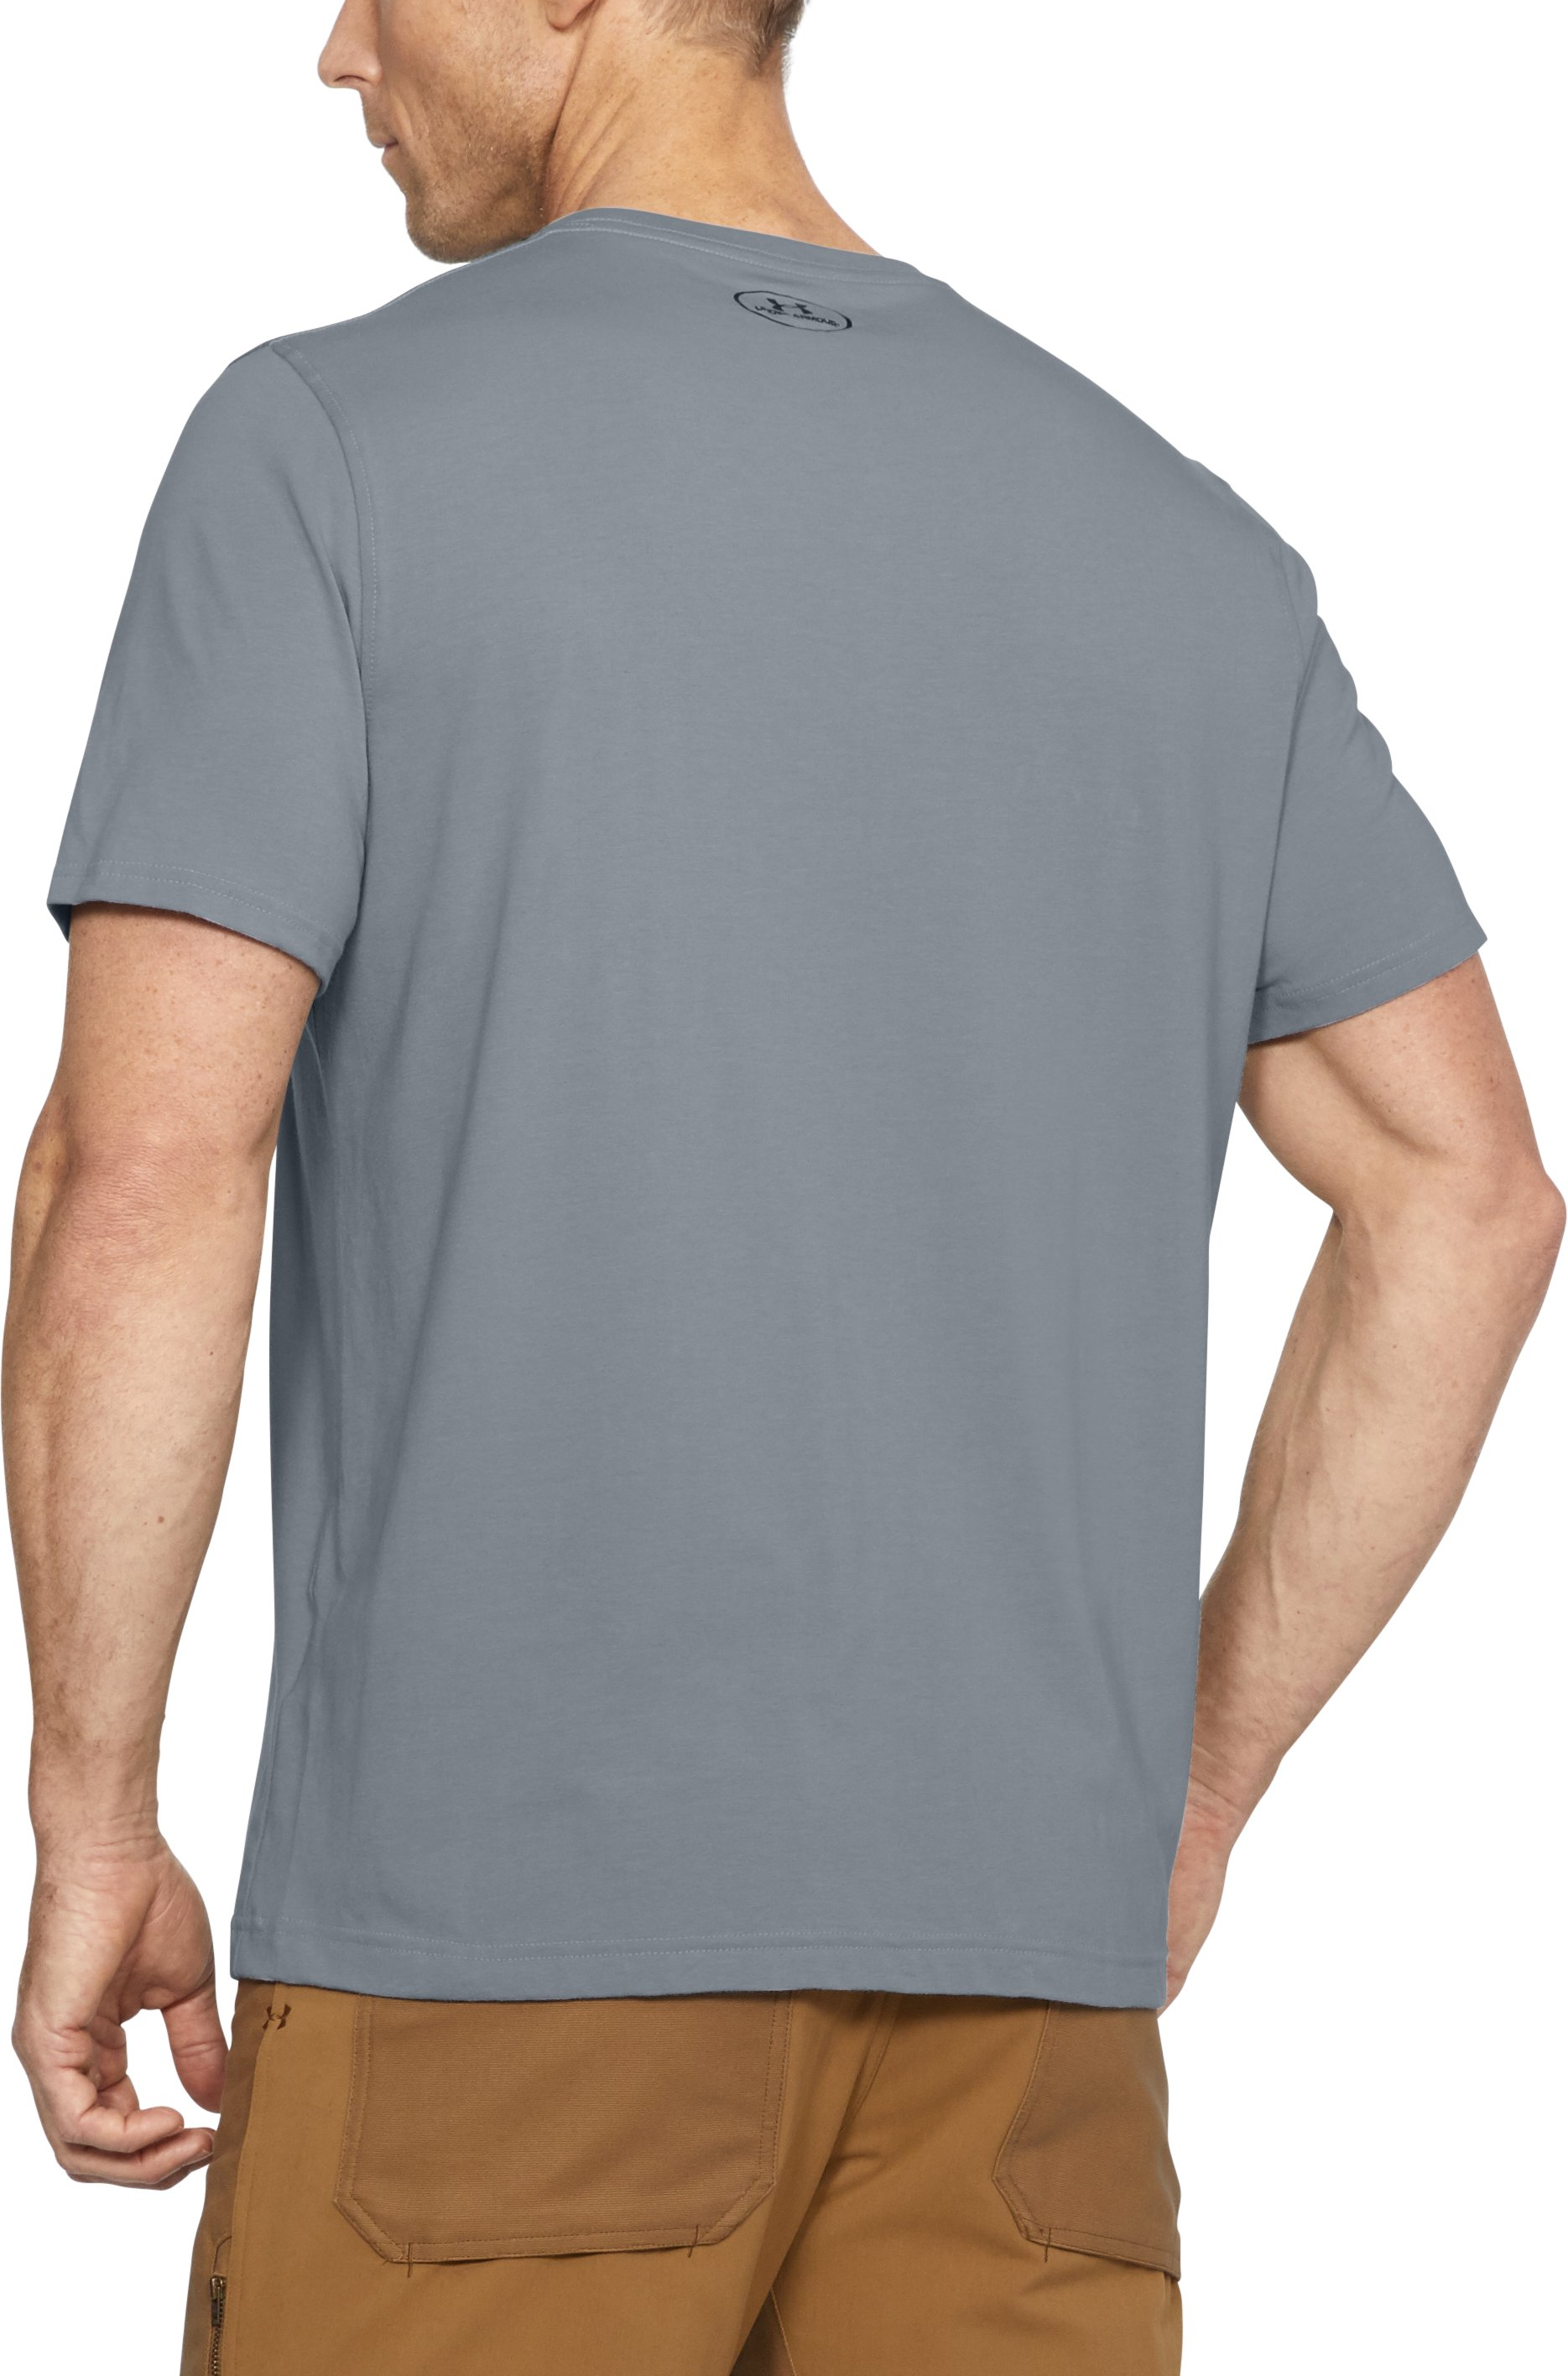 Men's Outdoor Stacked T-Shirt, Steel, undefined